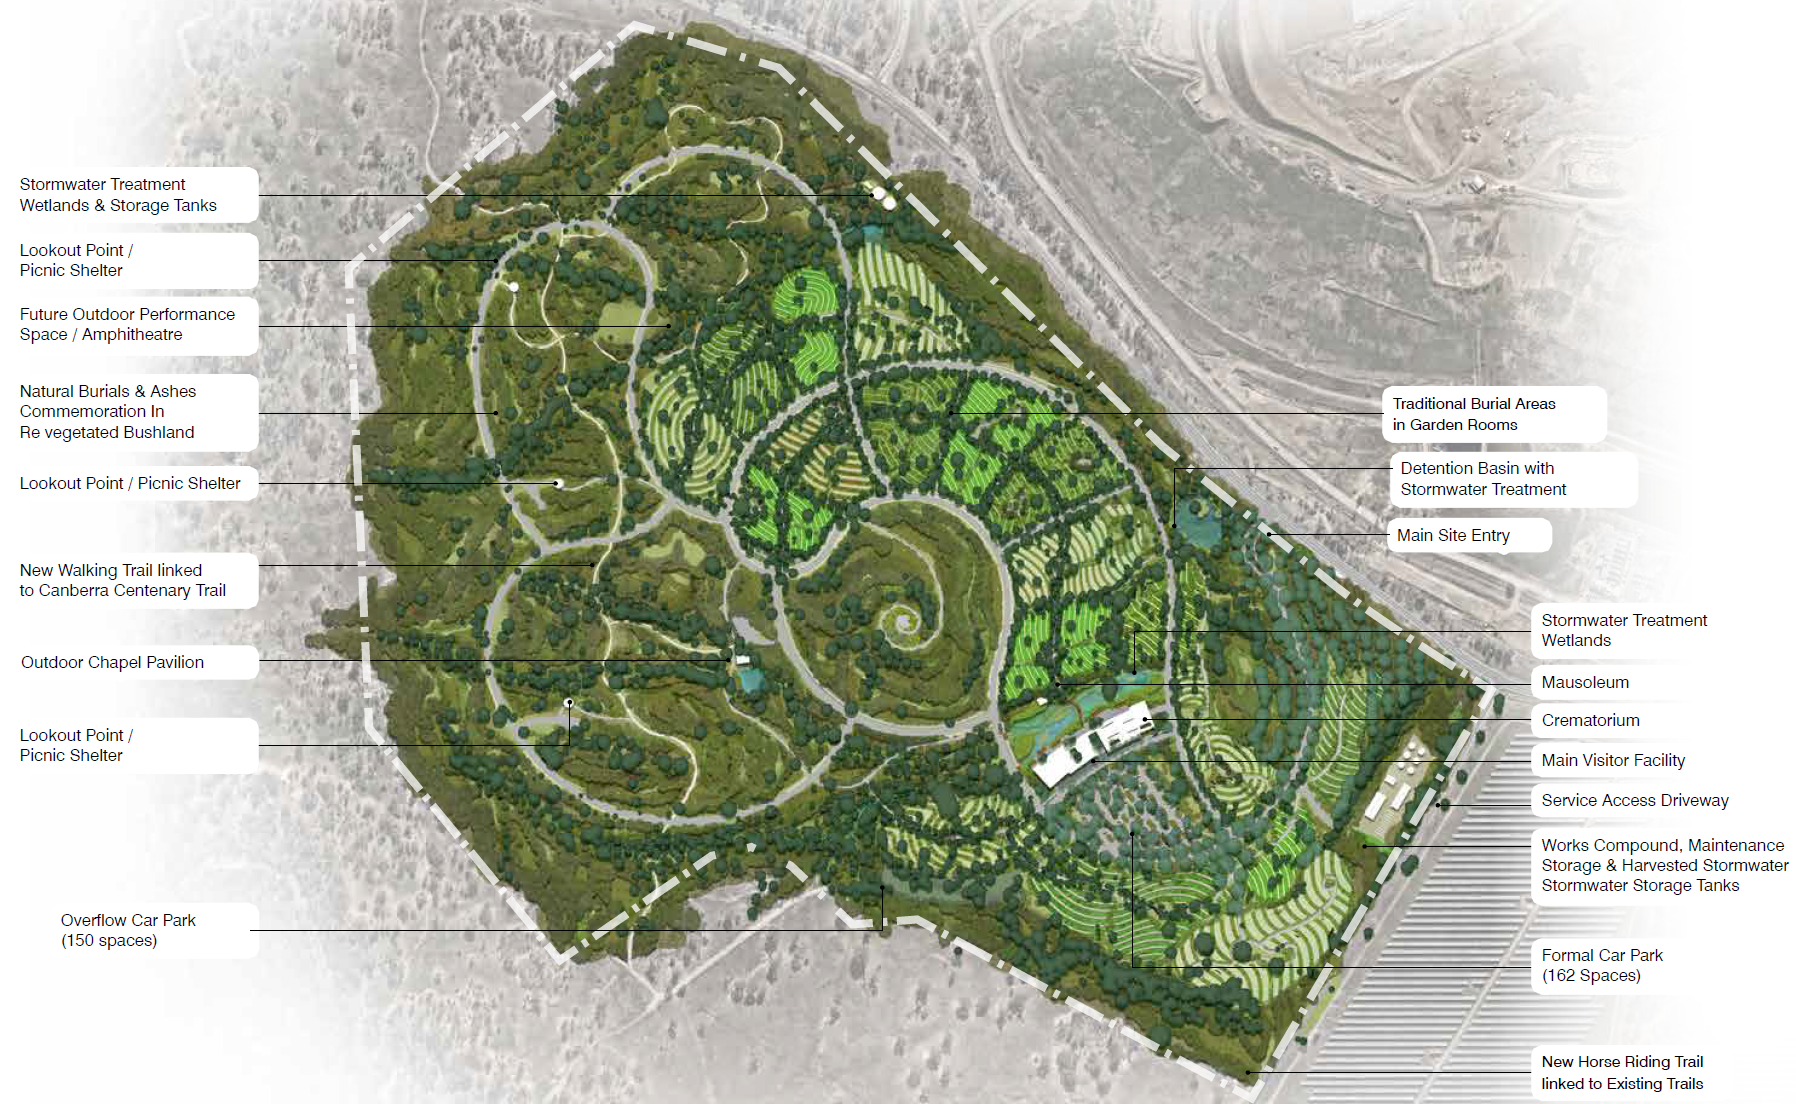 Image of the Southern Memorial Park masterplan with the key features outlined.